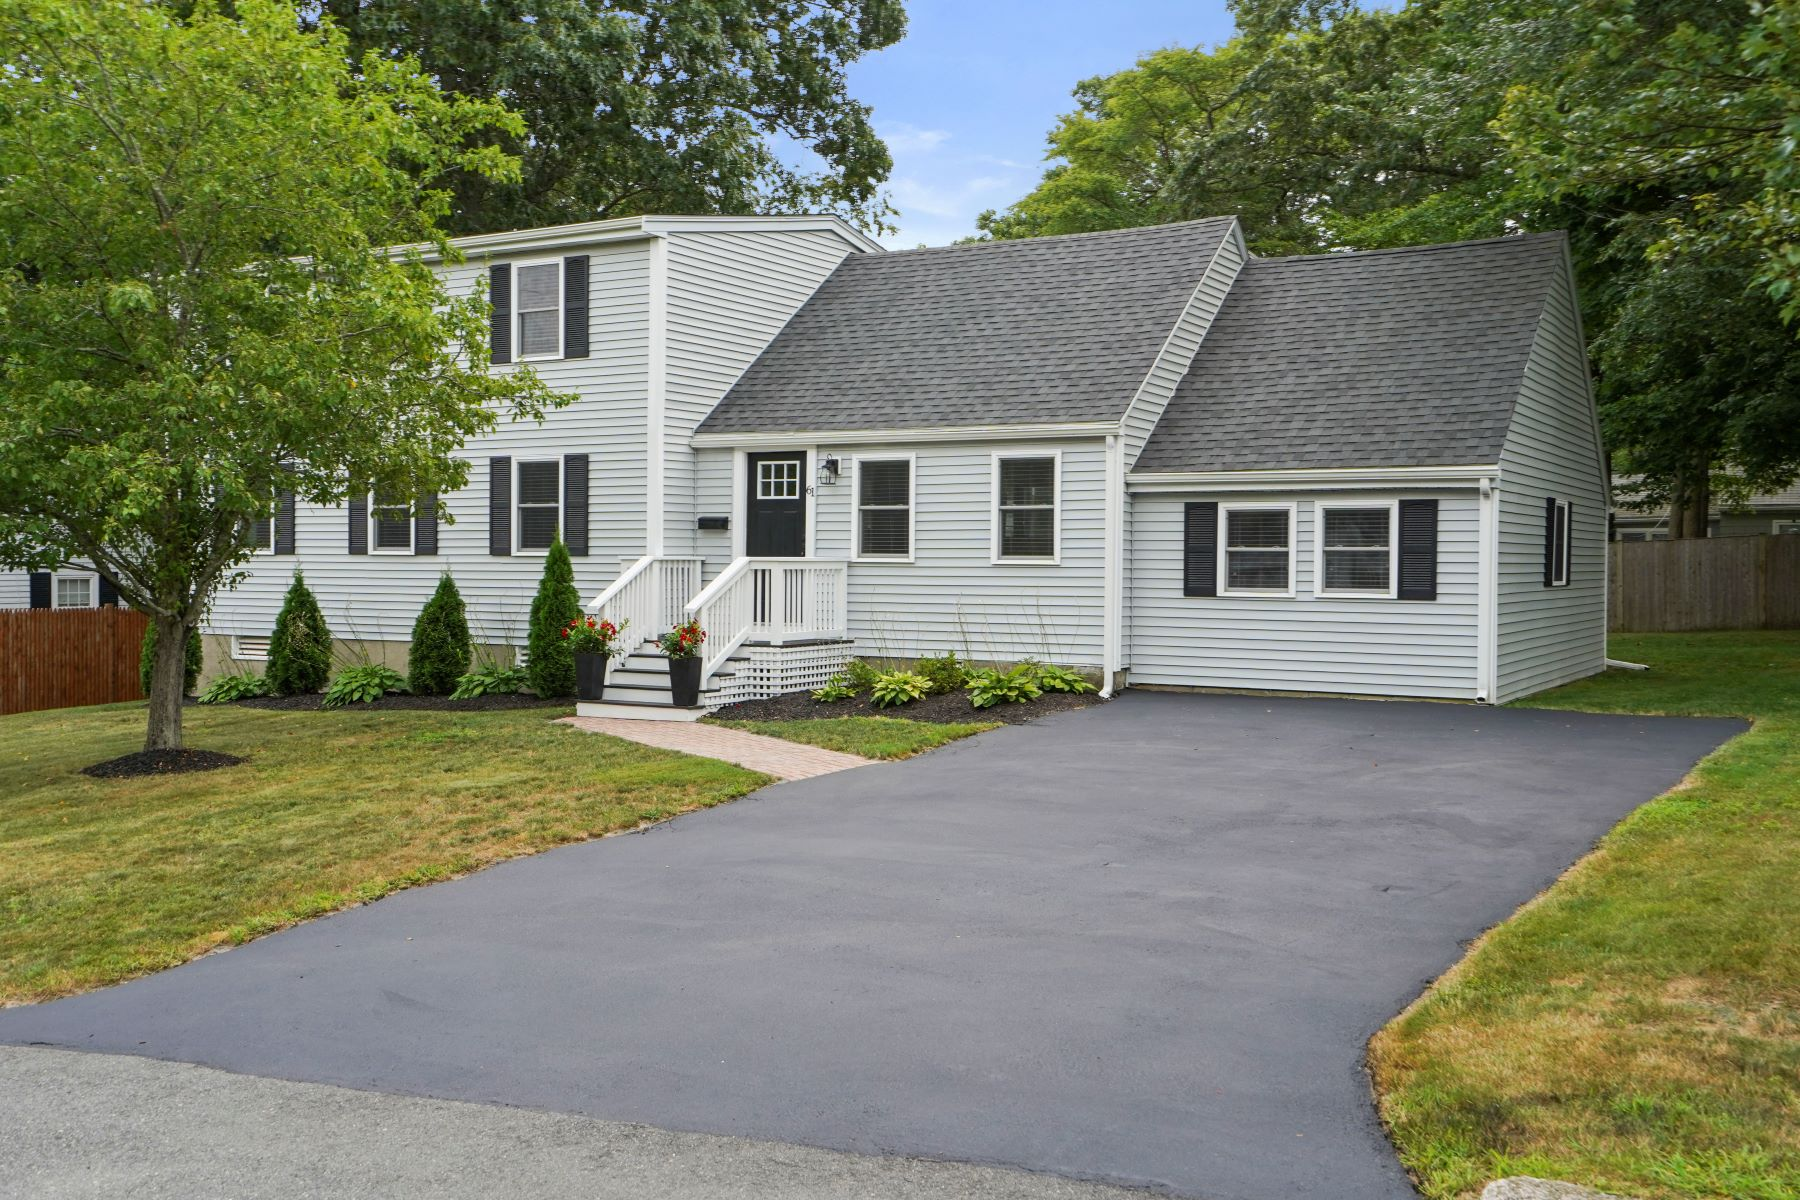 Single Family Homes for Sale at 61 Constitution Ave, Weymouth 61 Constitution Avenue Weymouth, Massachusetts 02190 United States